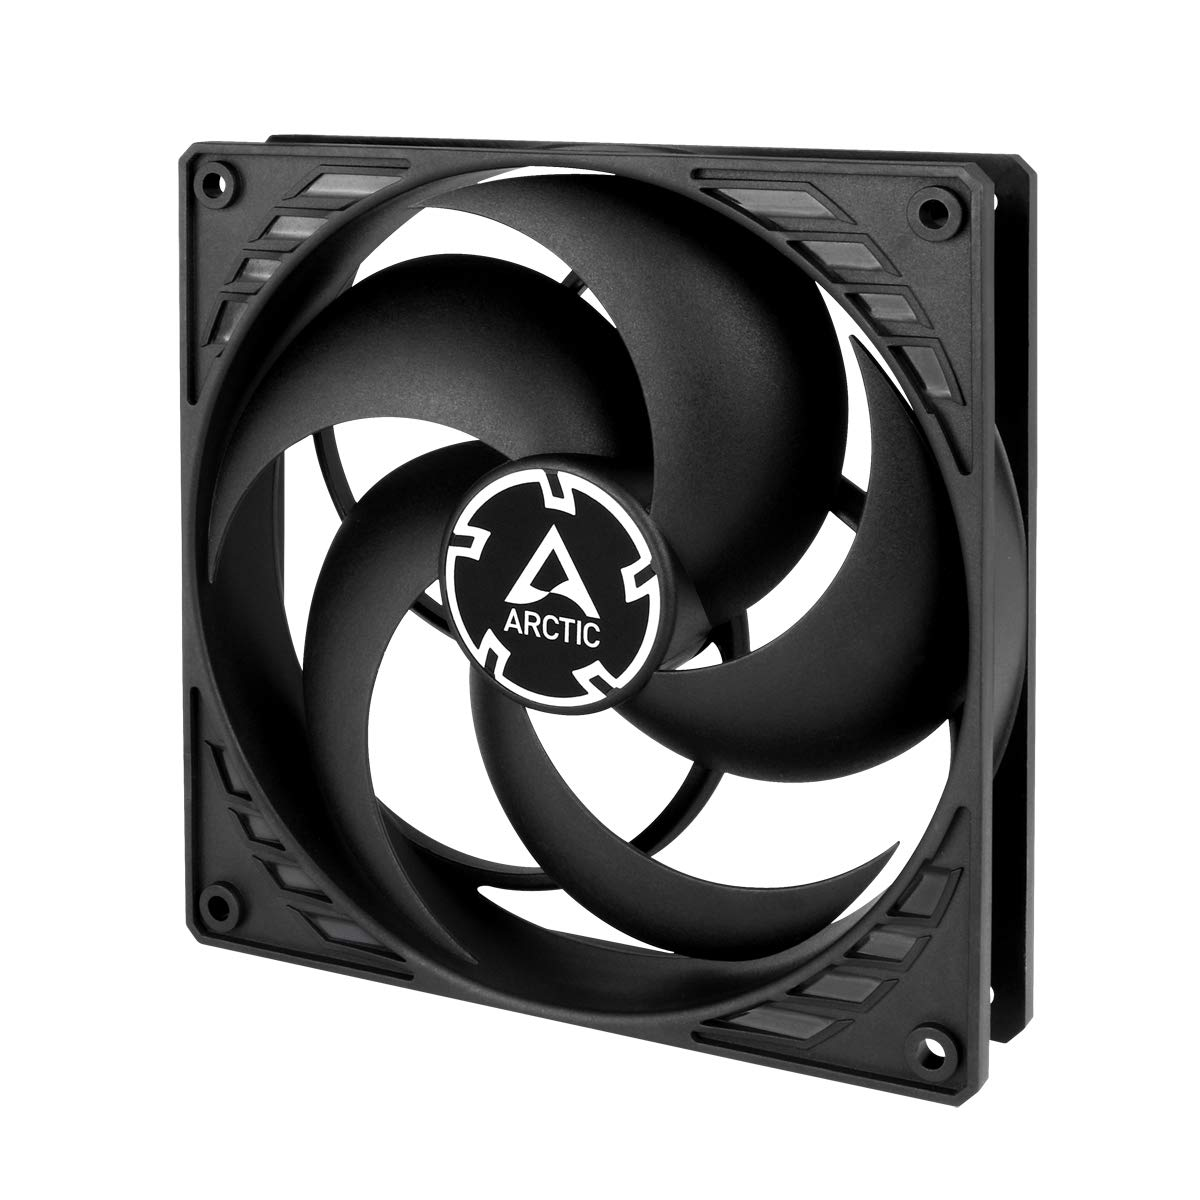 ARCTIC F14 PWM PST CO - 140 mm PWM PST Case Fan for Continuous Operation | Cooler with PST-Port (PWM Sharing Technology) and Dual Ball Bearing | Regulates RPM in sync ACFAN00080A